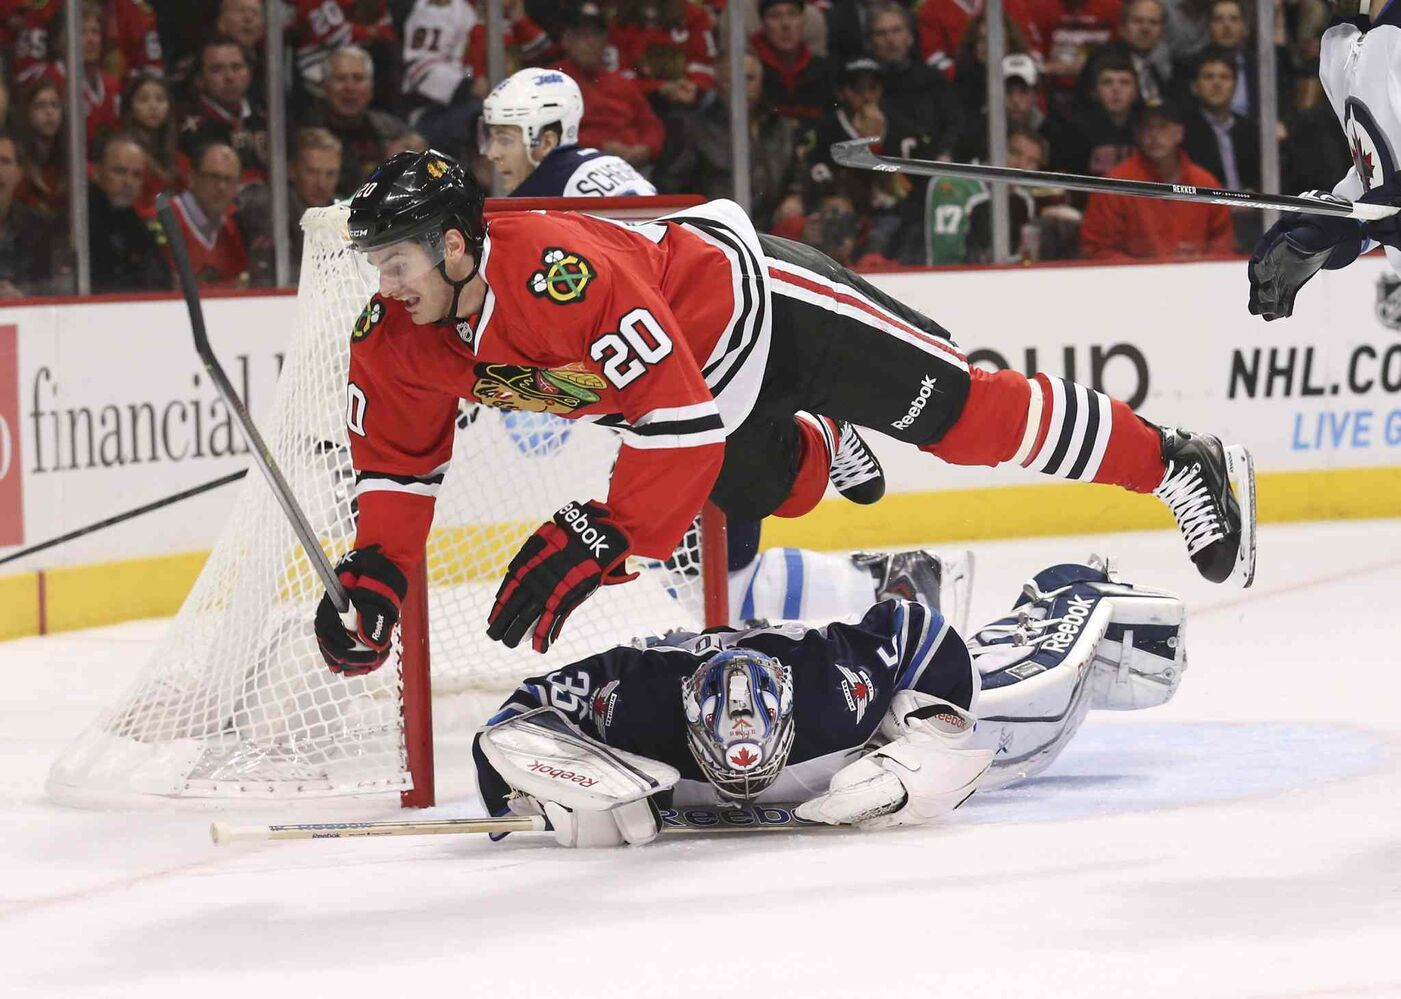 Brandon Saad (20) of the Chicago Blackhawks dives over goalie Al Montoya of the Winnipeg Jets while chasing a puck during the first period.